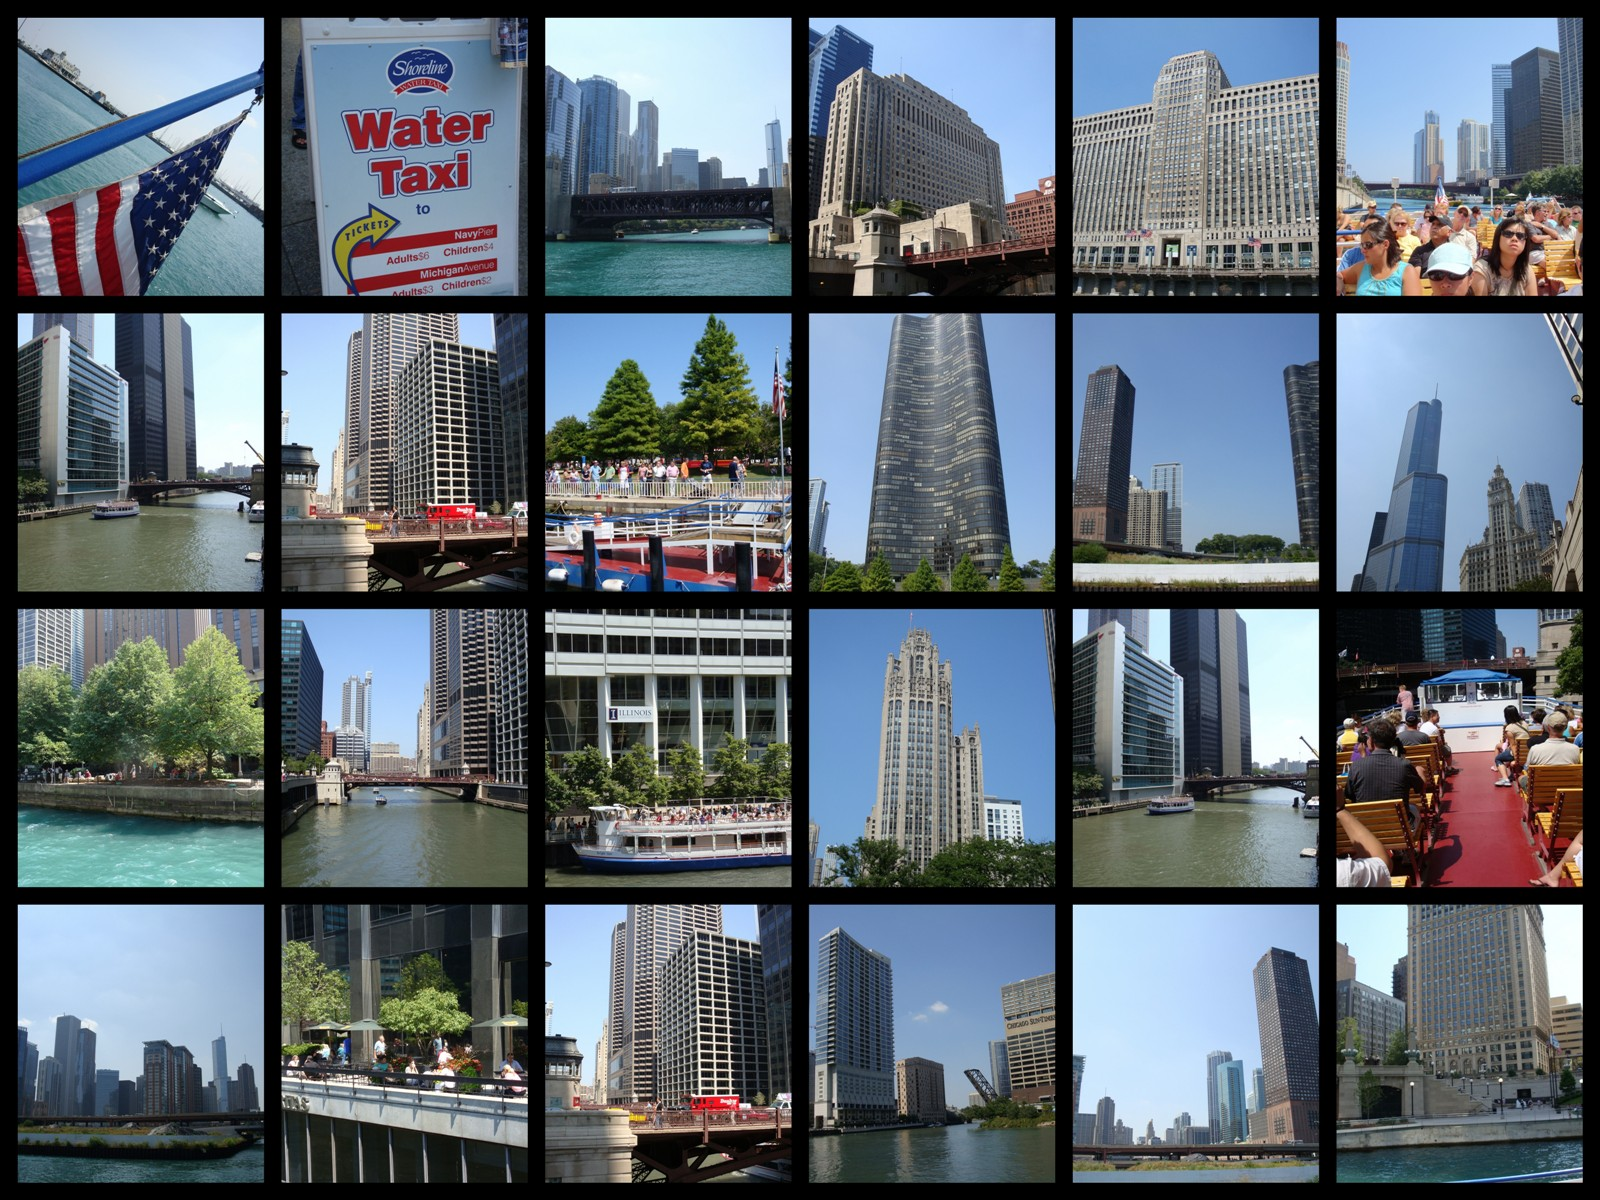 Chicago Water Taxi Tour